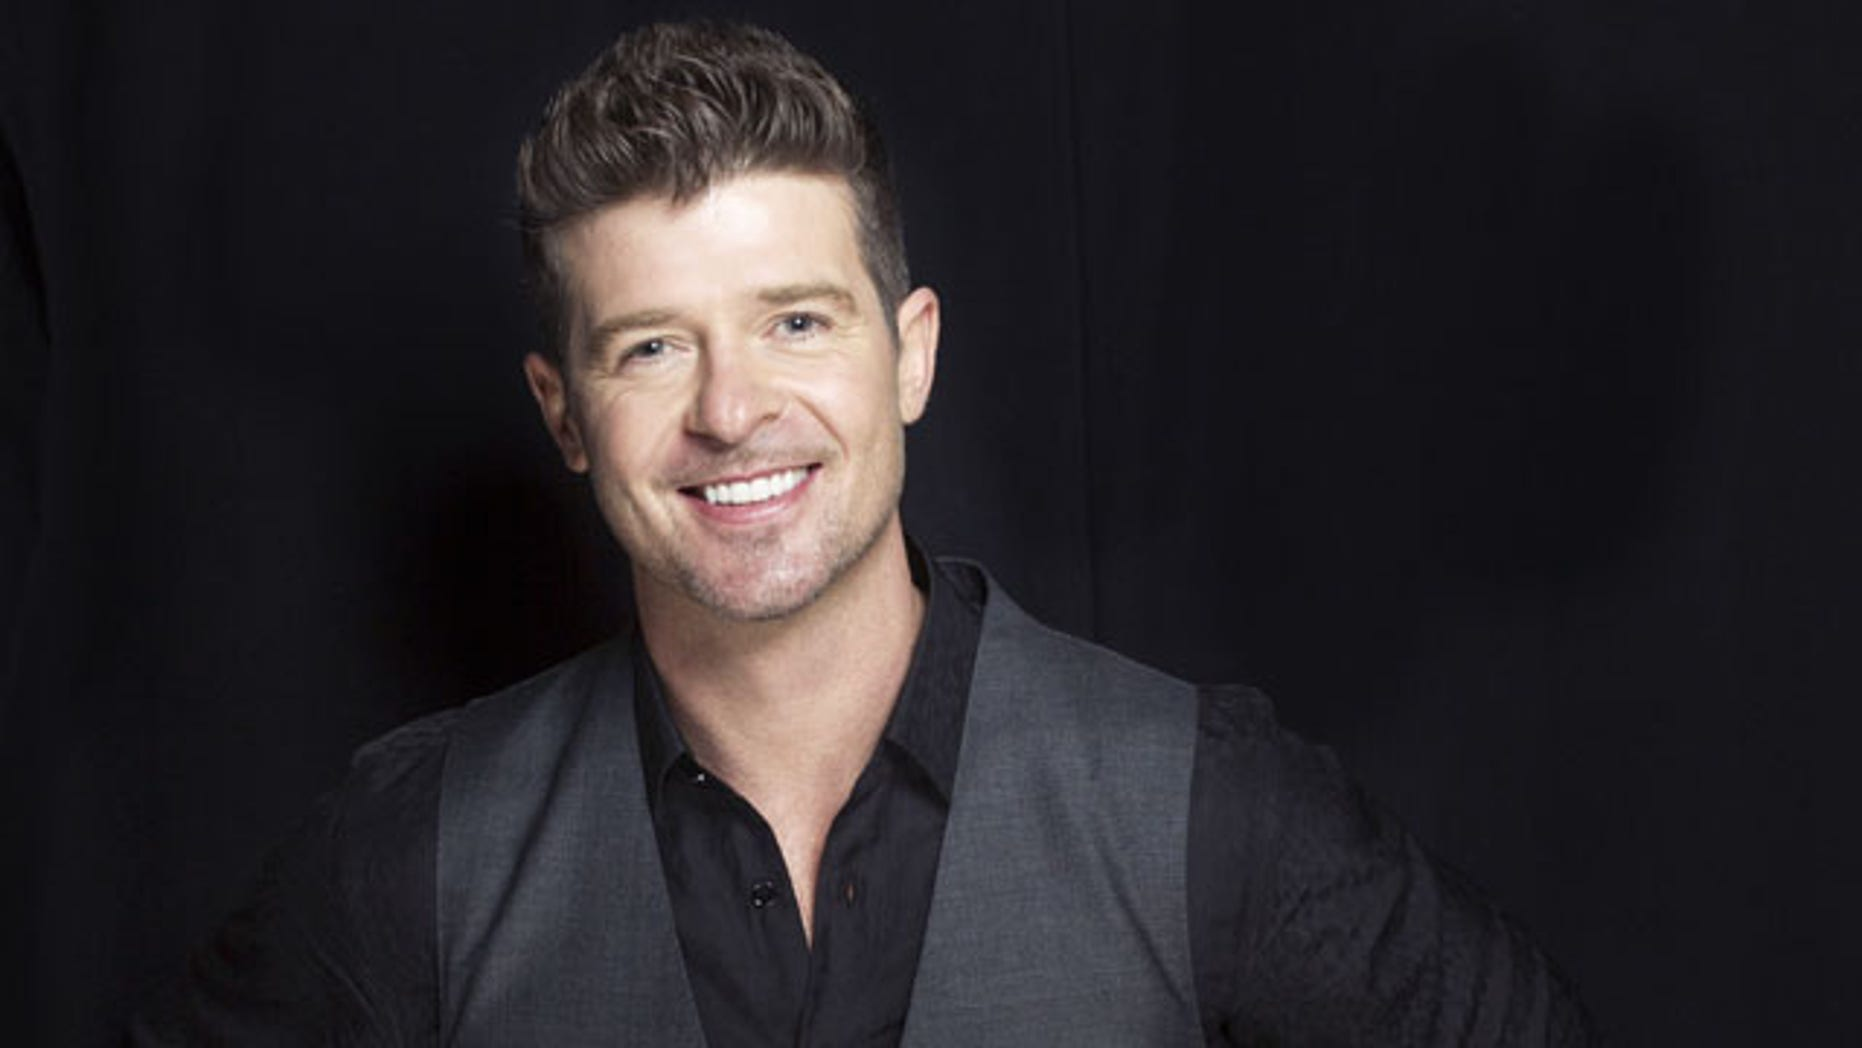 Robin Thicke was caught in a photo groping DJ Lana Scolaro in 2013. She recently addressed the infamous snap in a recent Instagram post.